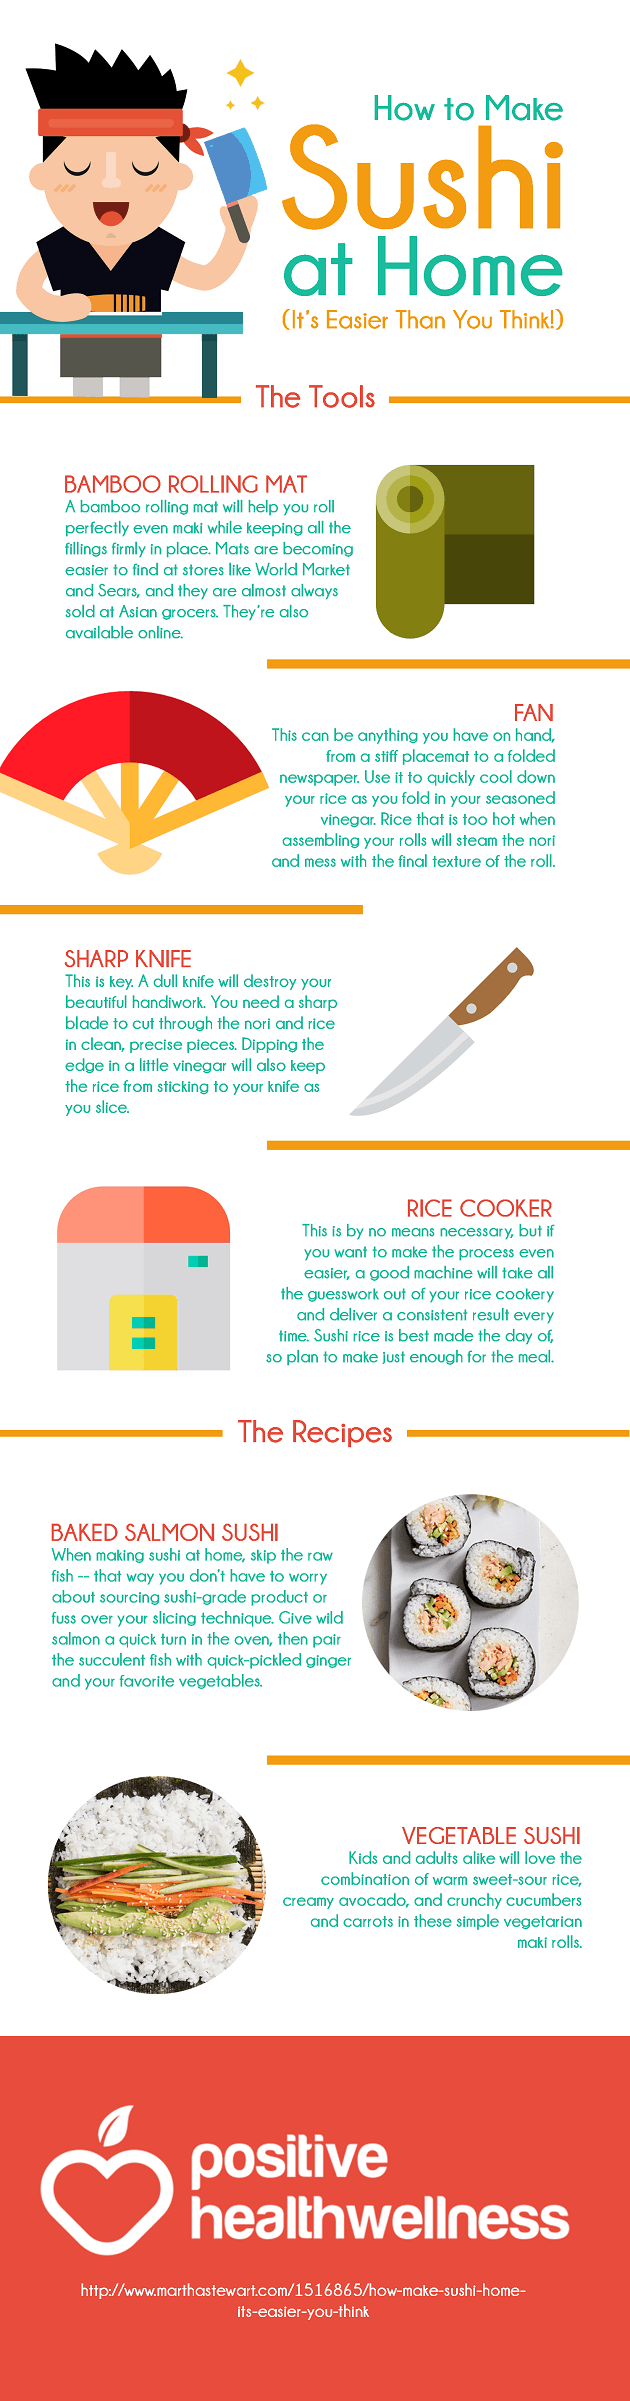 How To Make Sushi At Home (It's Easier Than You Think!)